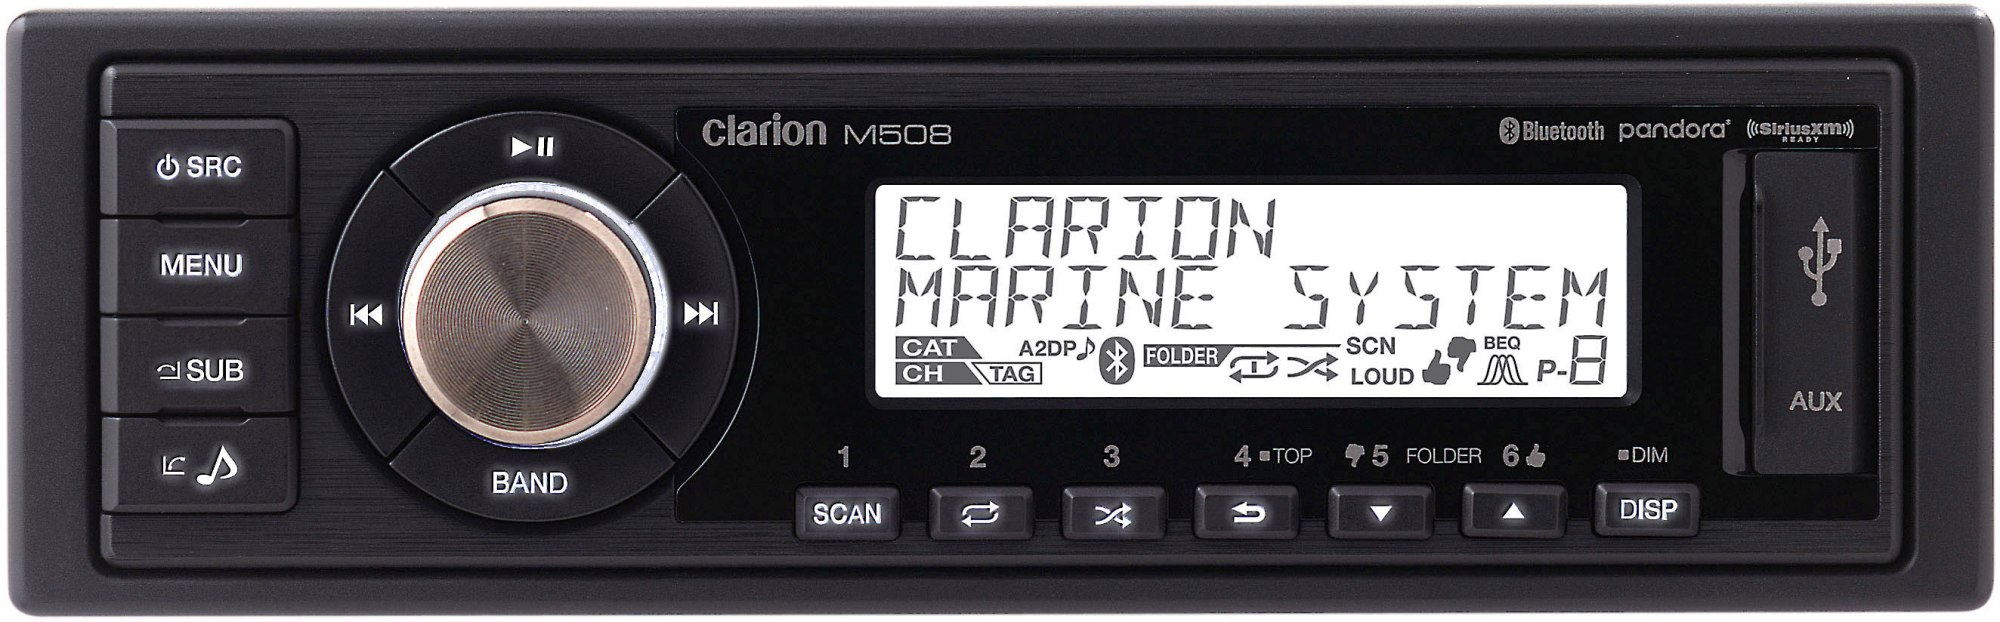 hight resolution of clarion m508 marine digital media receiver with bluetooth does not play cds at crutchfield